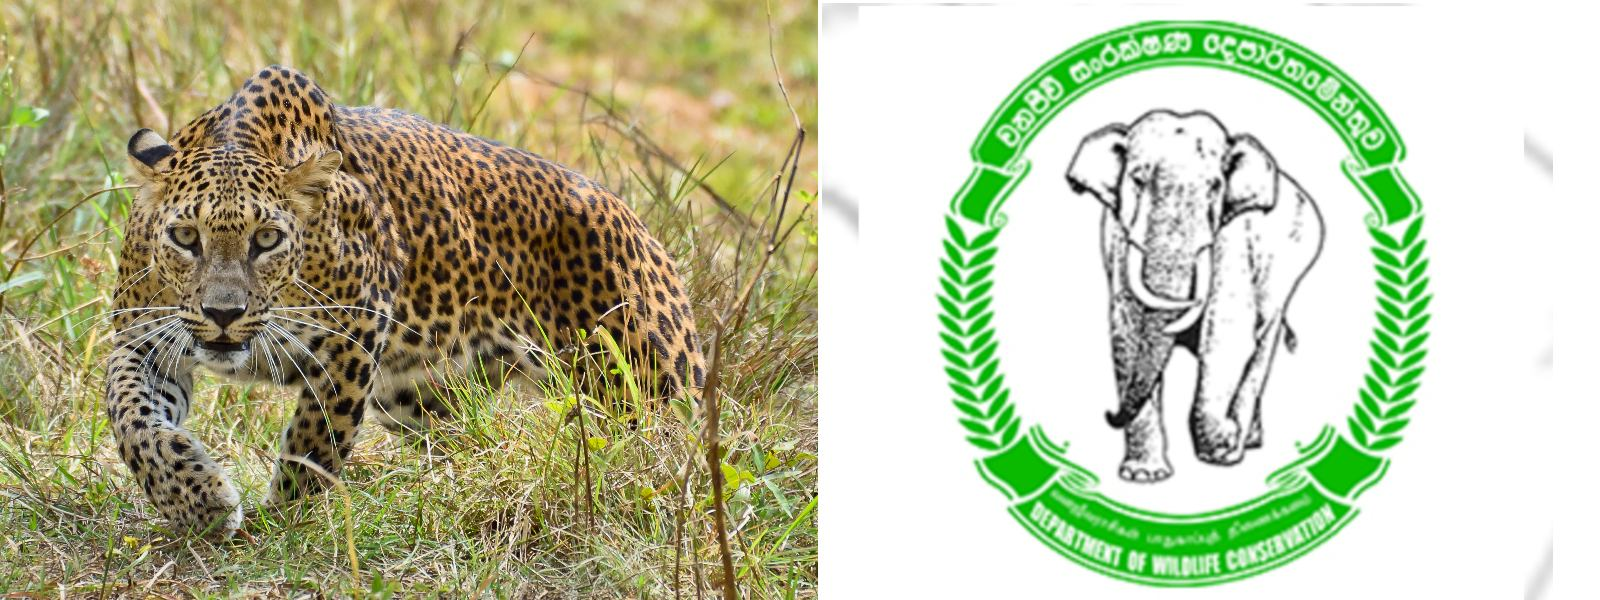 OPERATION LAUNCHED TO LOCATE VIOLENT LEOPARD